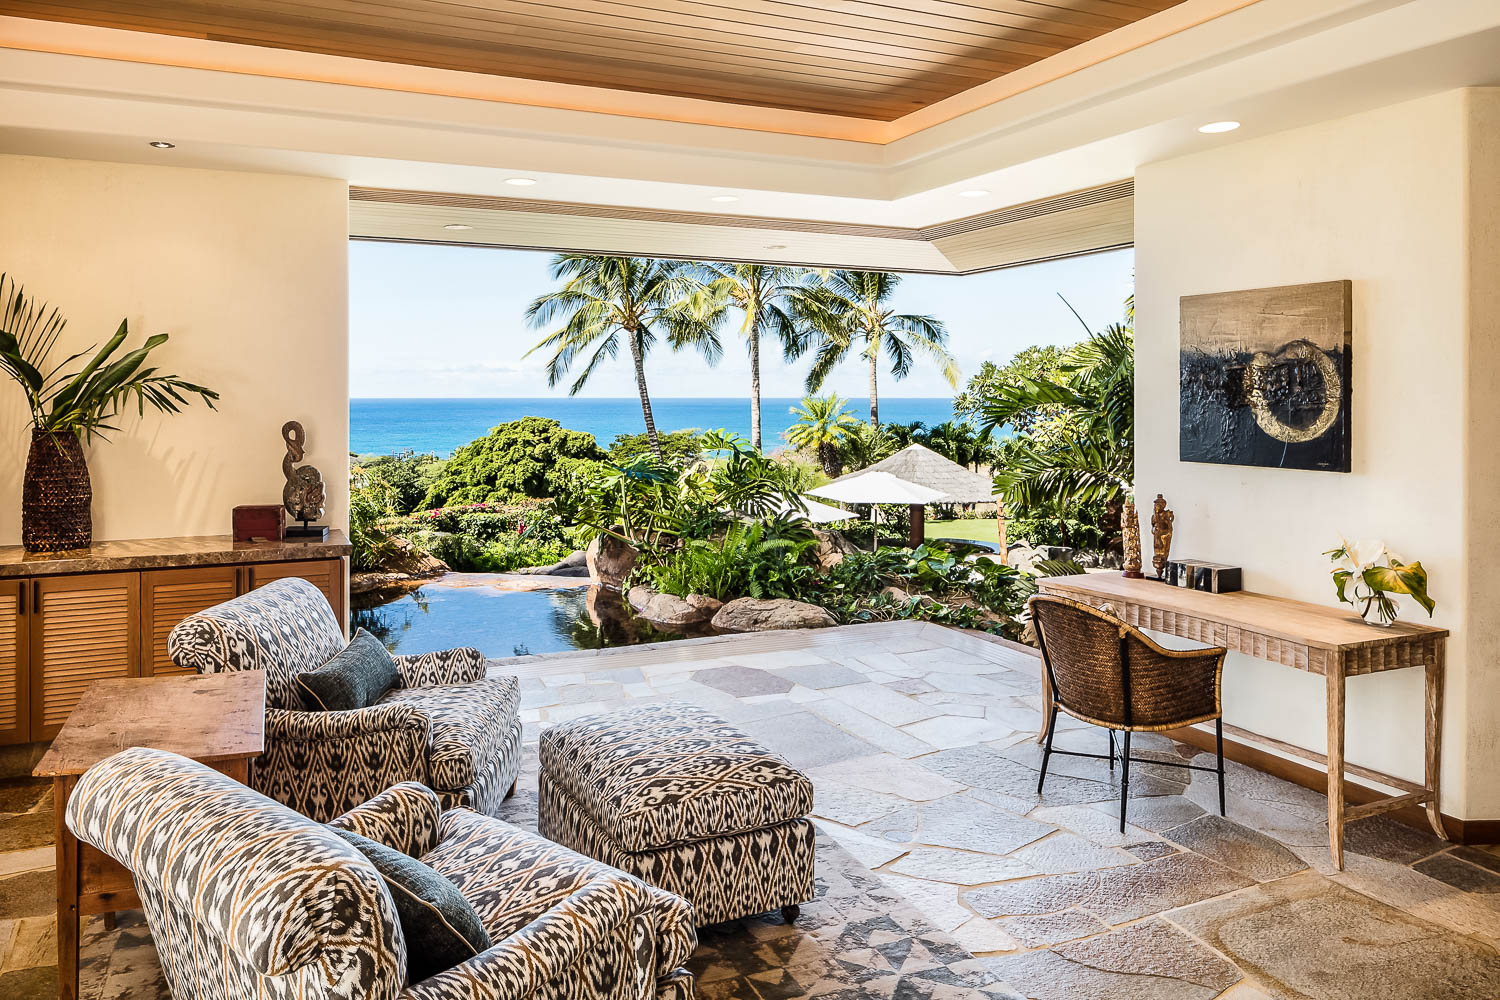 Apartment Fairway North 5 Bedroom 5 Bath Mauna Kea Resort  Big Island  Hawaii photo 20362445